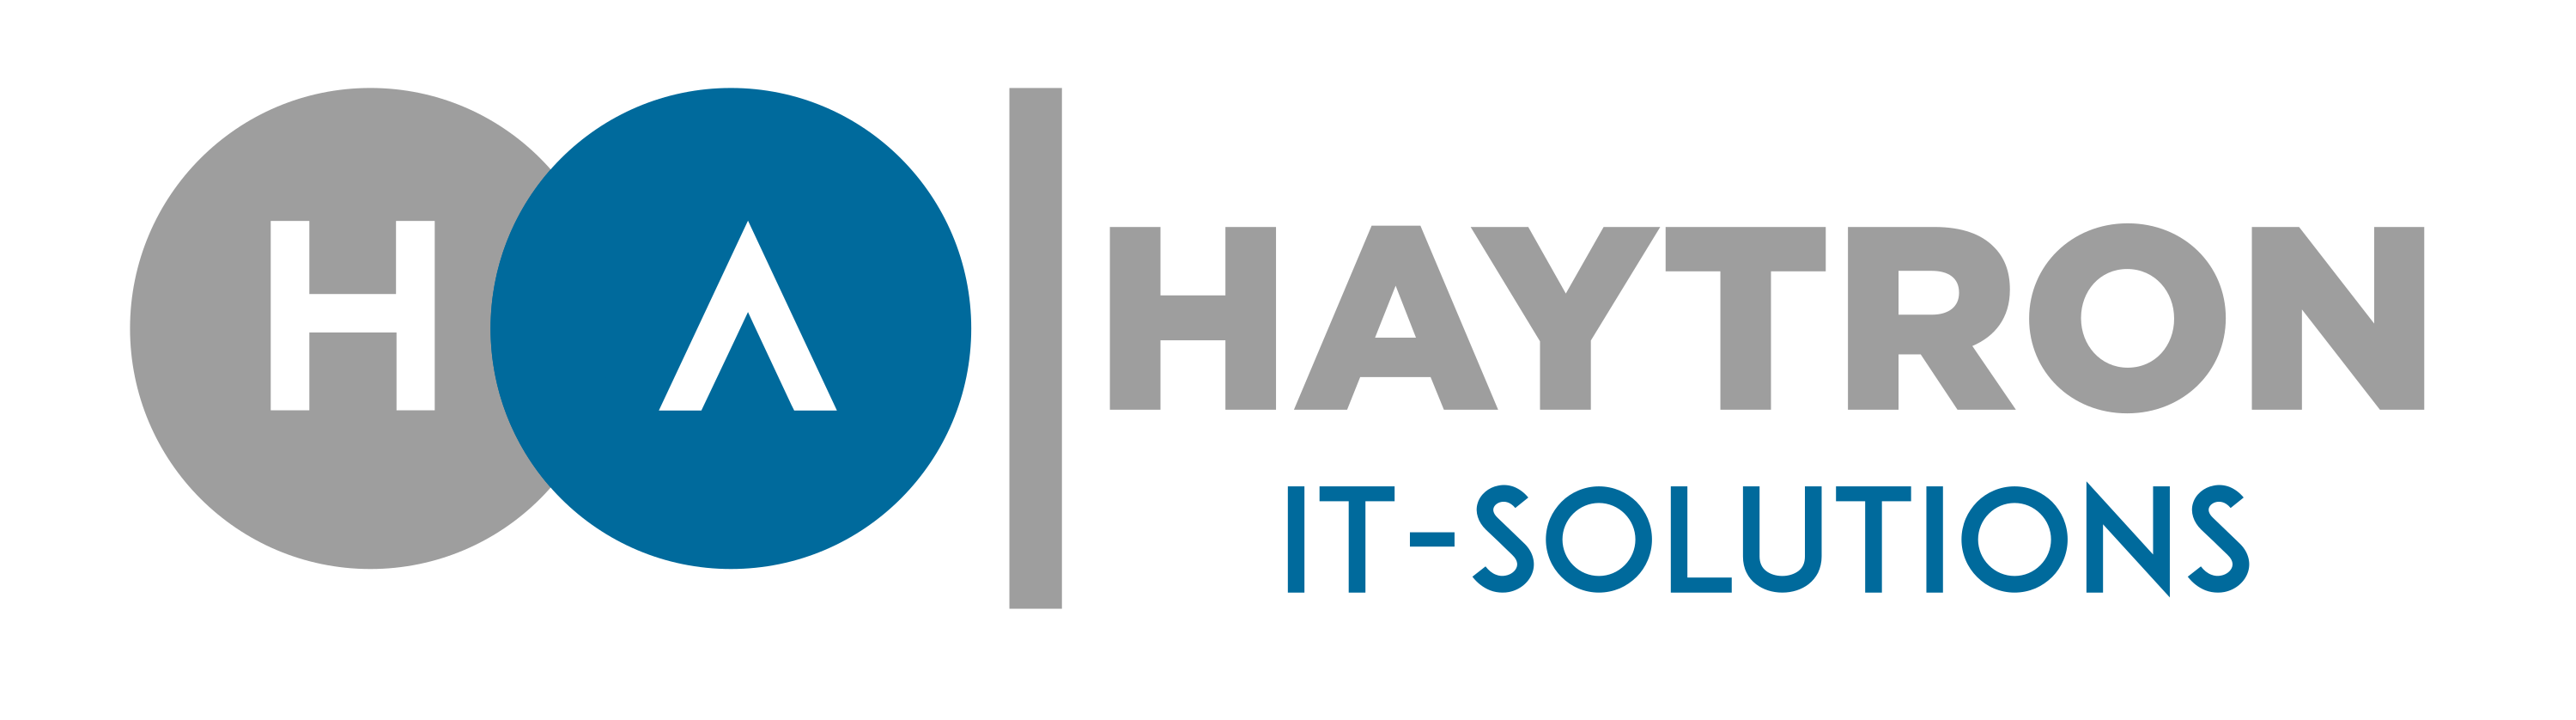 Haytron IT-Solutions | IT-Service & IT Support